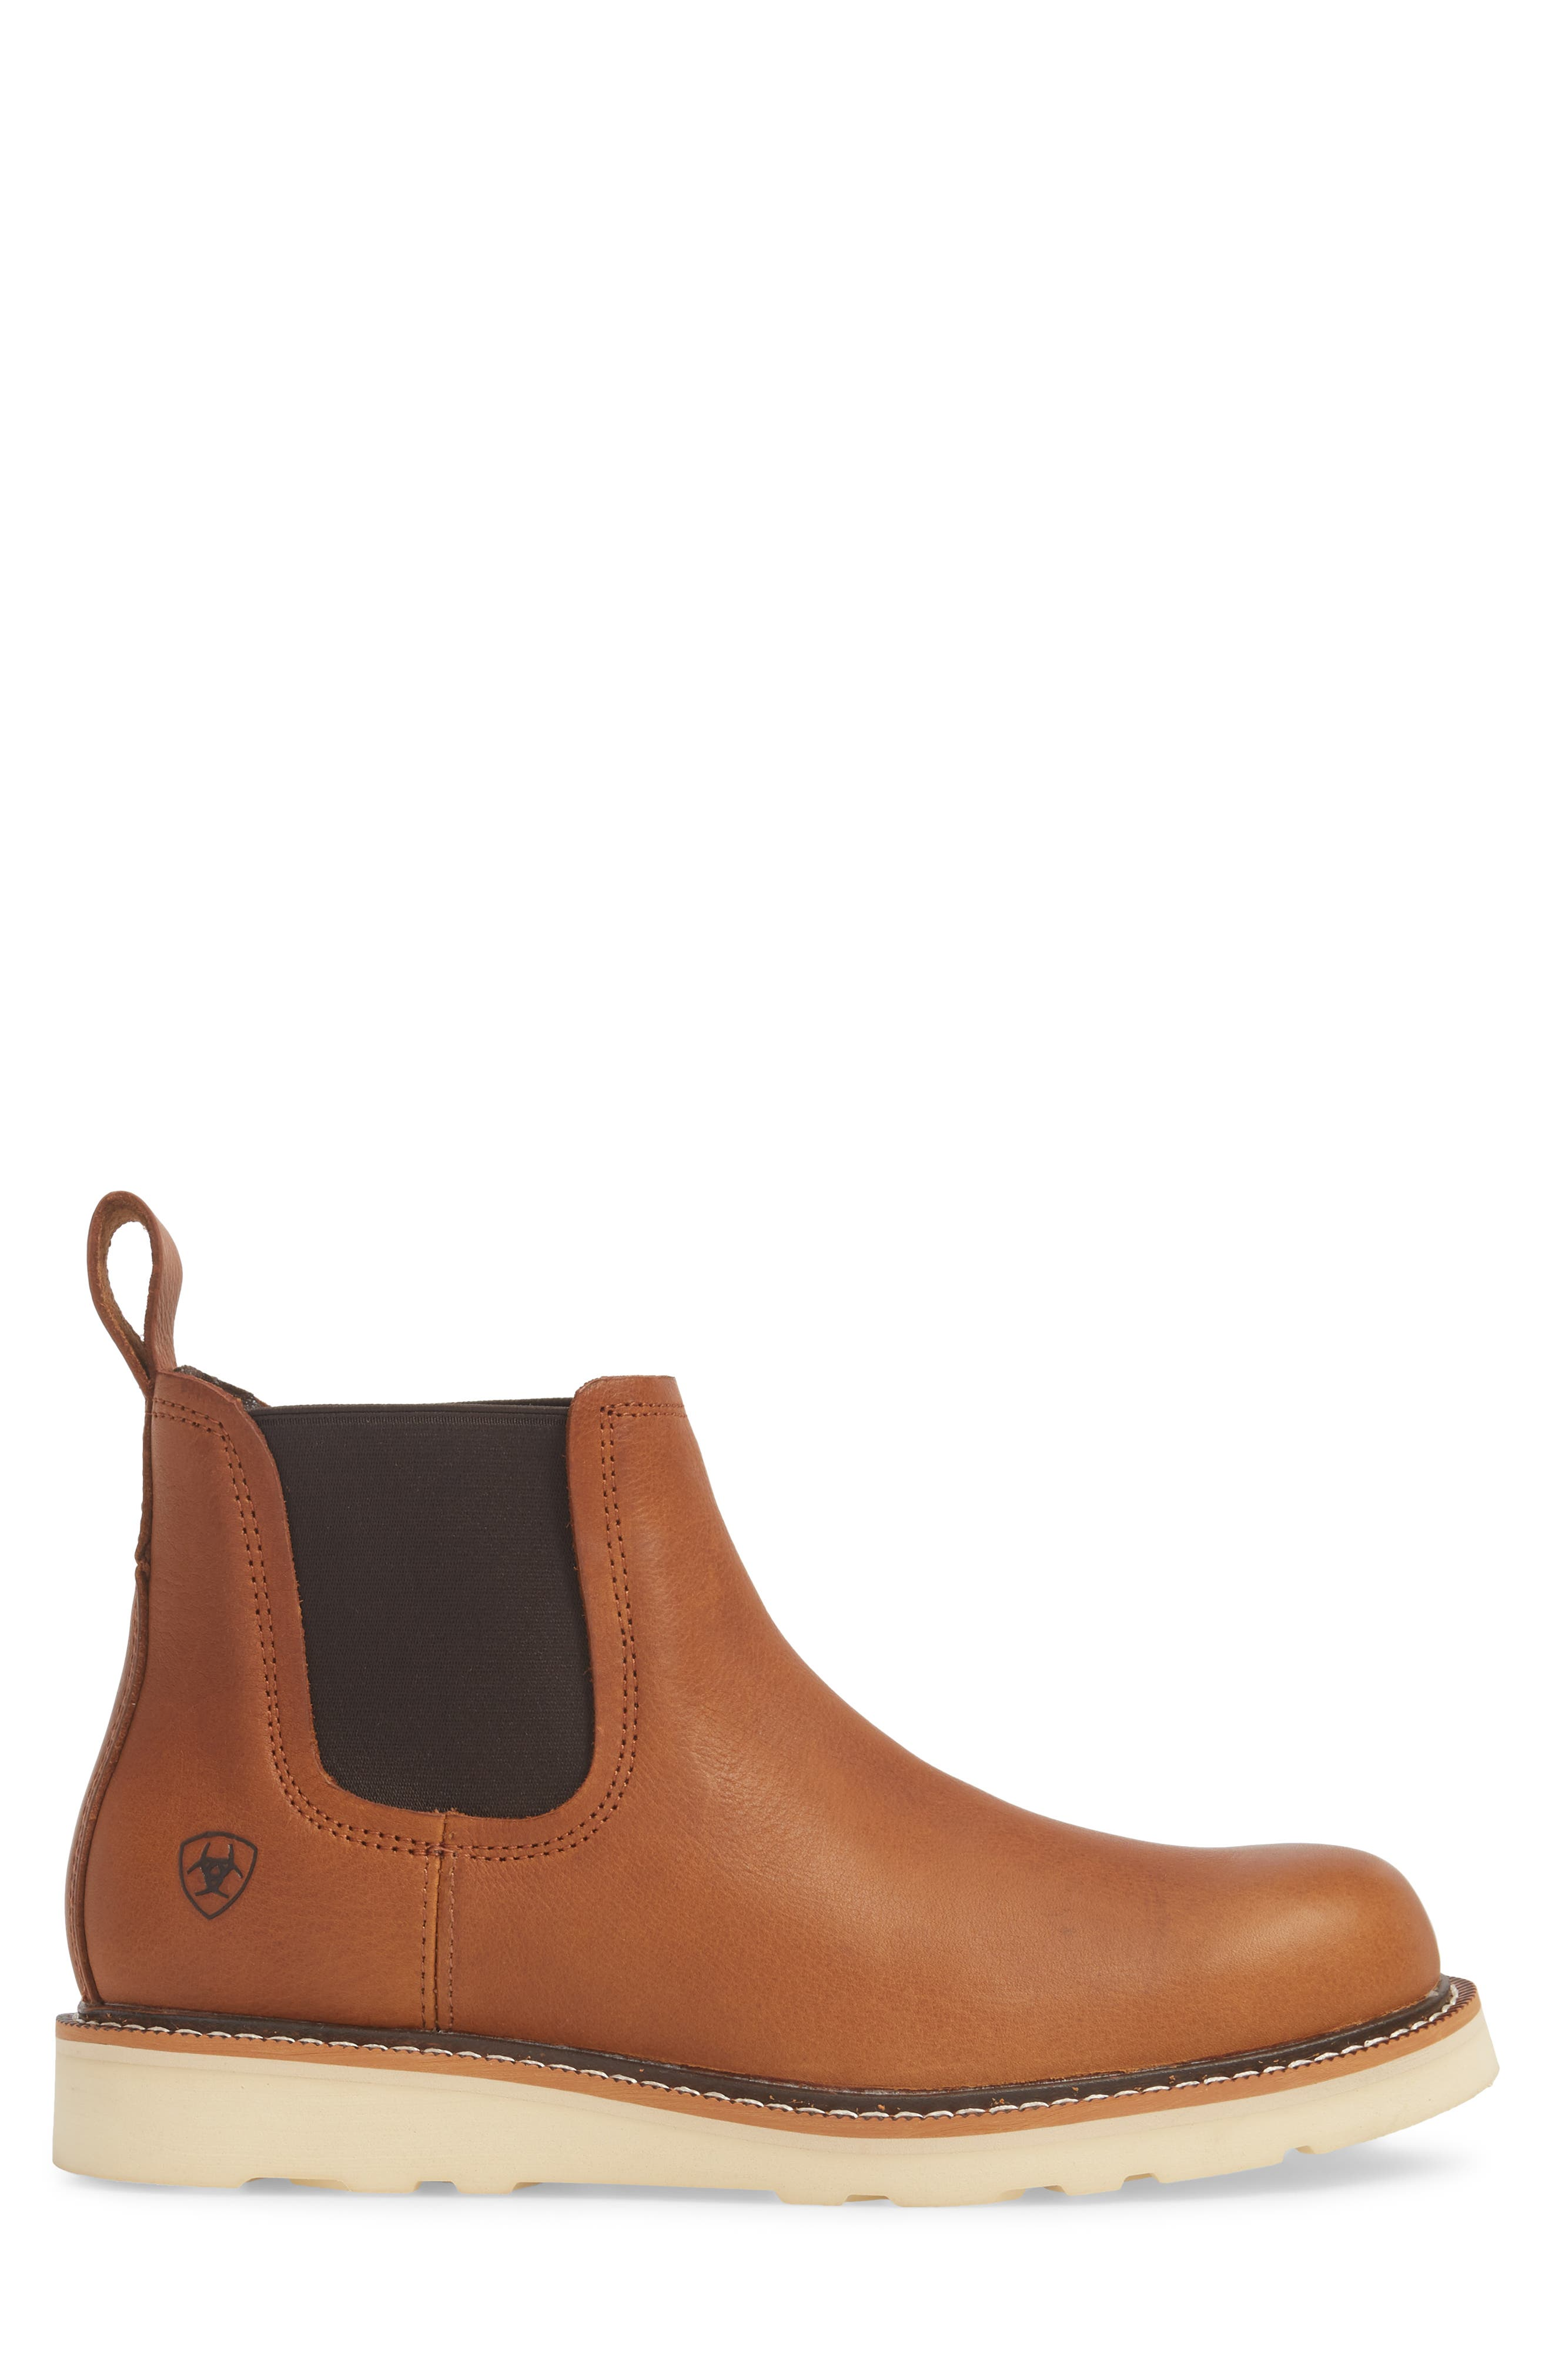 Rambler Recon Mid Chelsea Boot,                             Alternate thumbnail 3, color,                             GOLDEN GRIZZLY